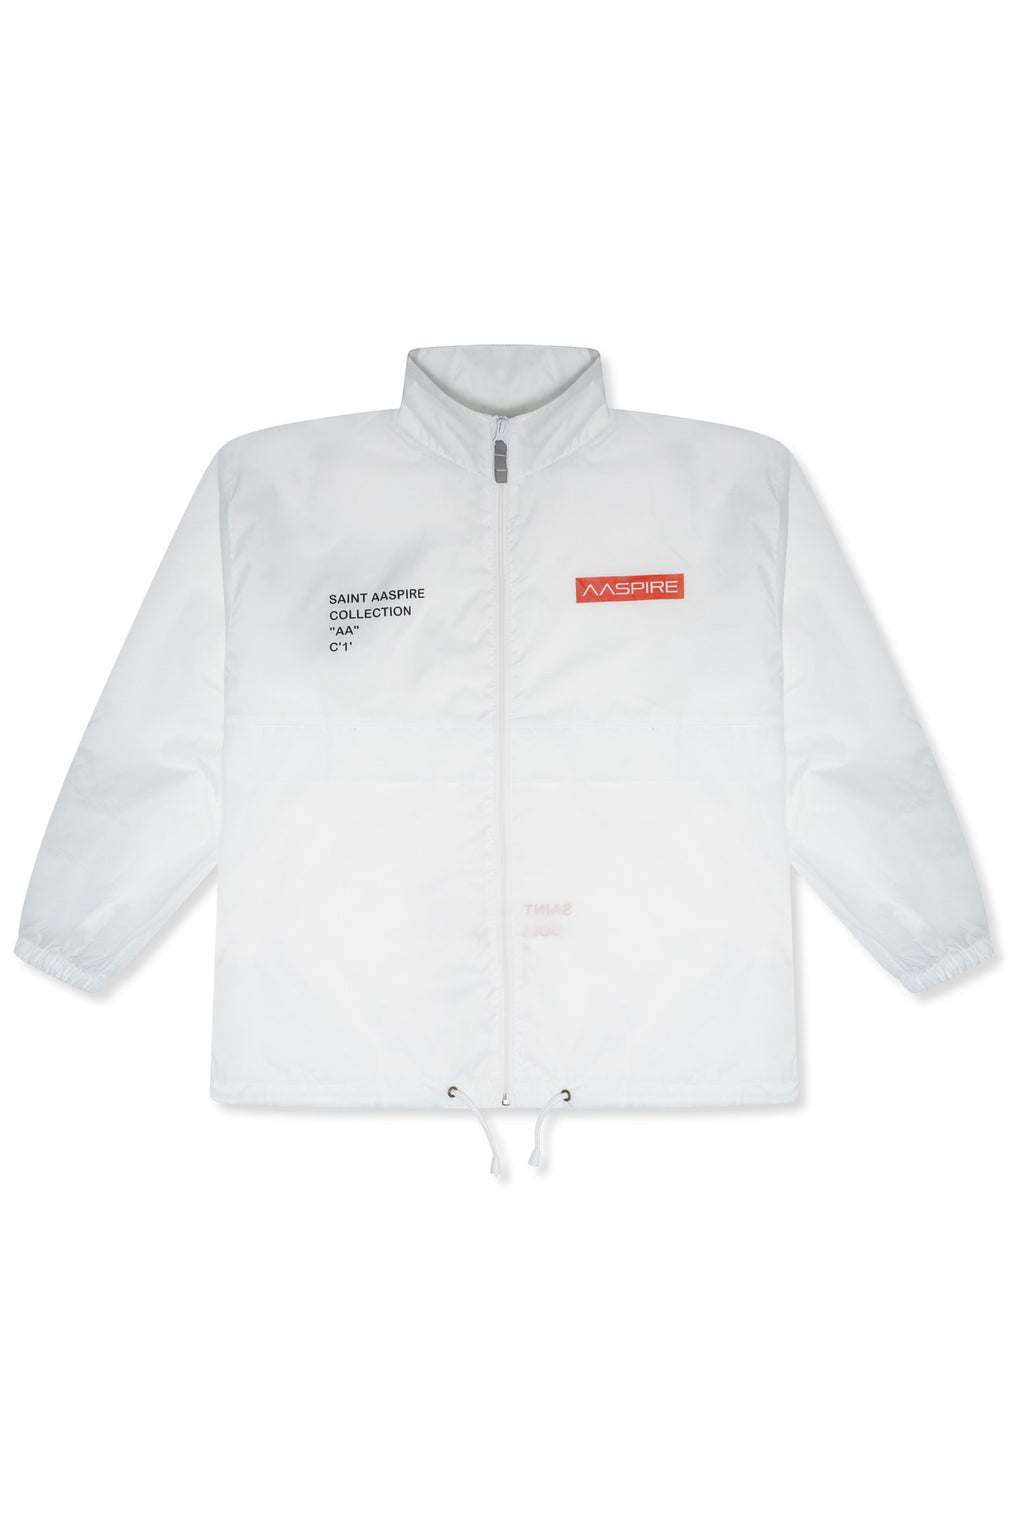 SAINT AASPIRE COLLECTION 1 WINDBREAKER (WHITE)